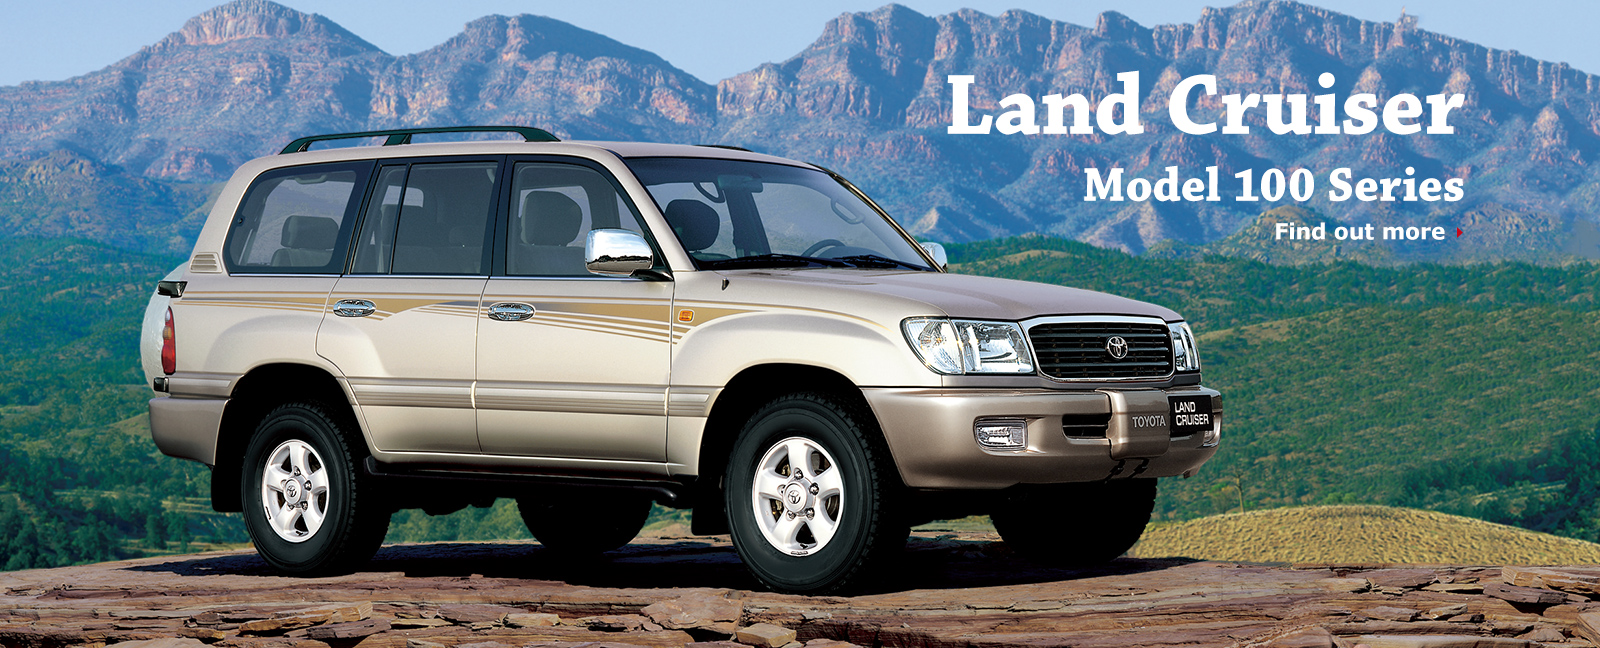 Land Cruiser Model 100 Series Find out more